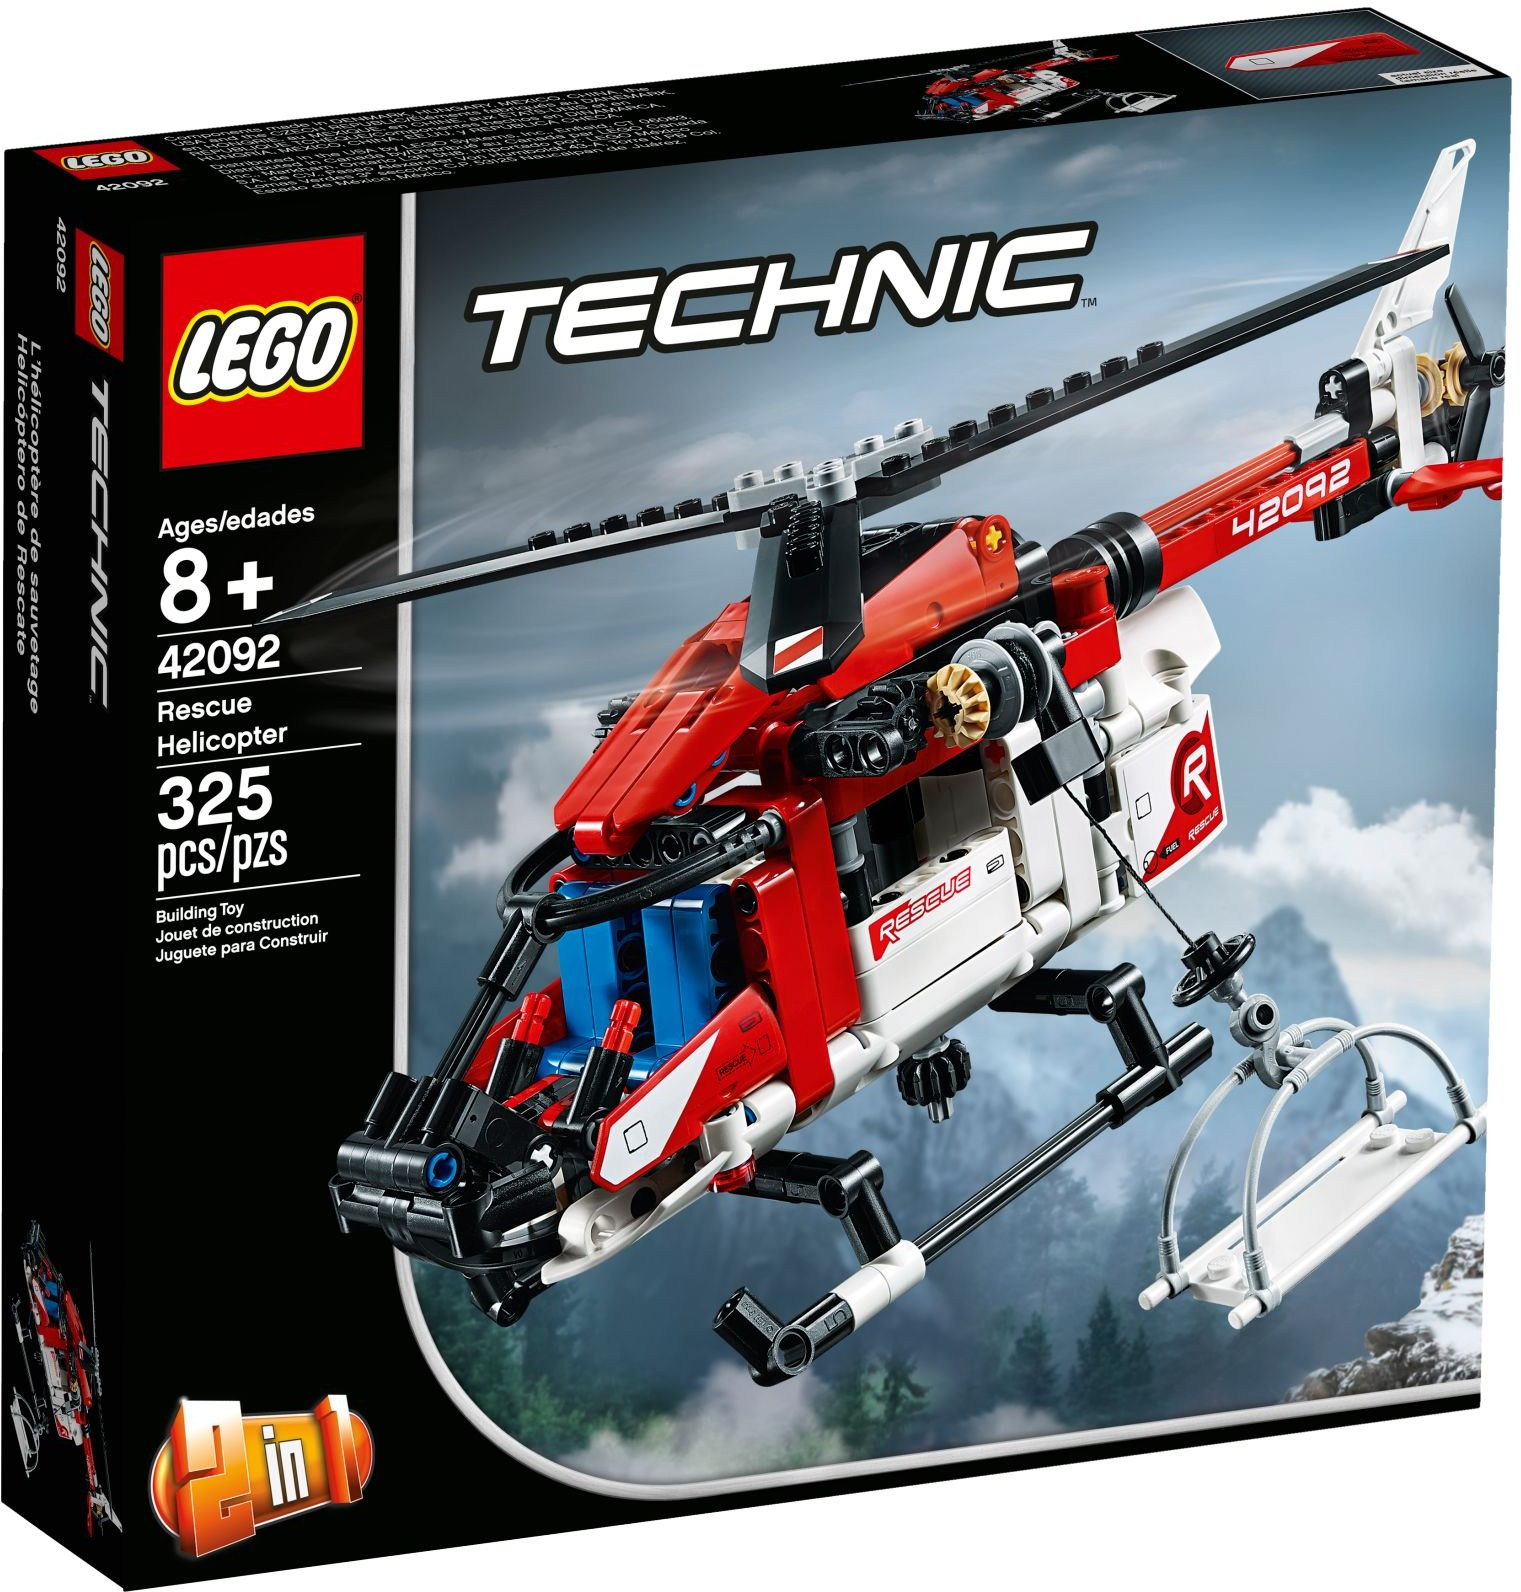 LEGO RESCUE HELICOPTER - 42092